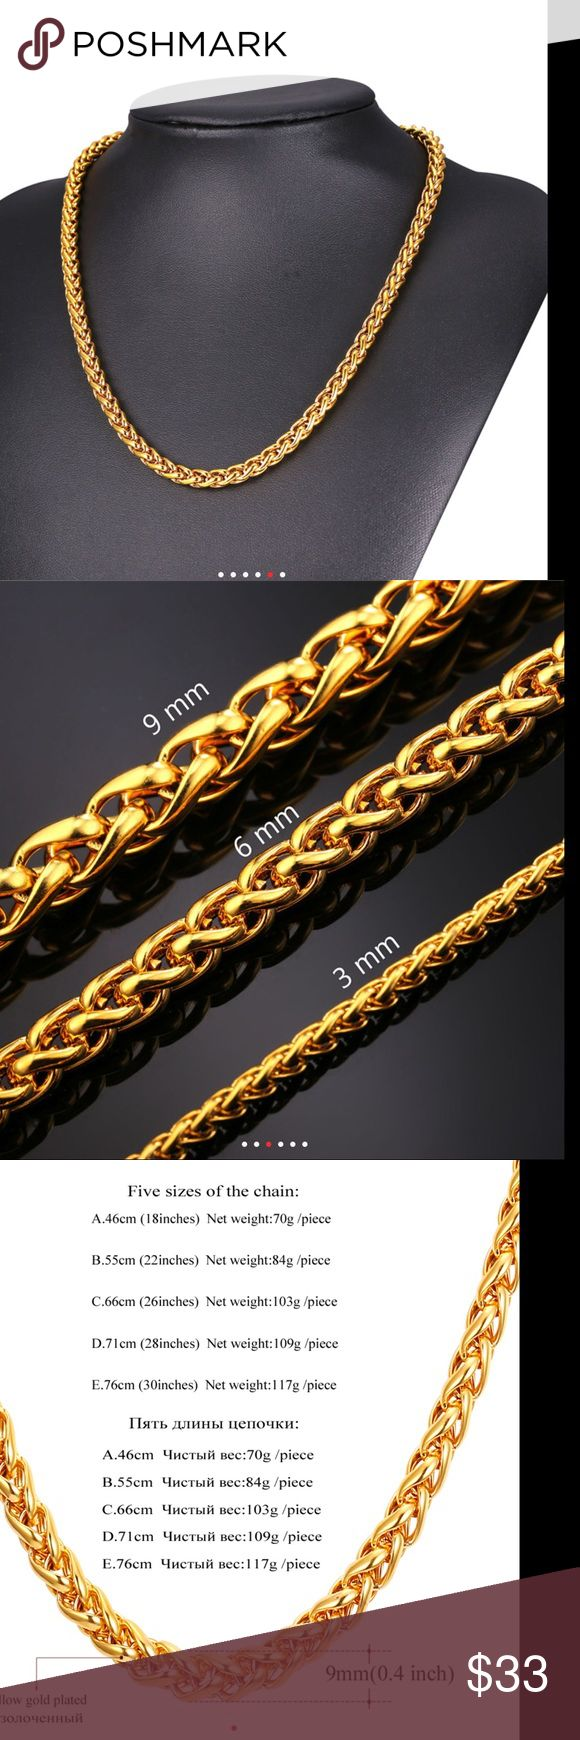 New 9mm 18k Gold Chain For Men Brand New Real 18k Gold Plated Chain Fit For